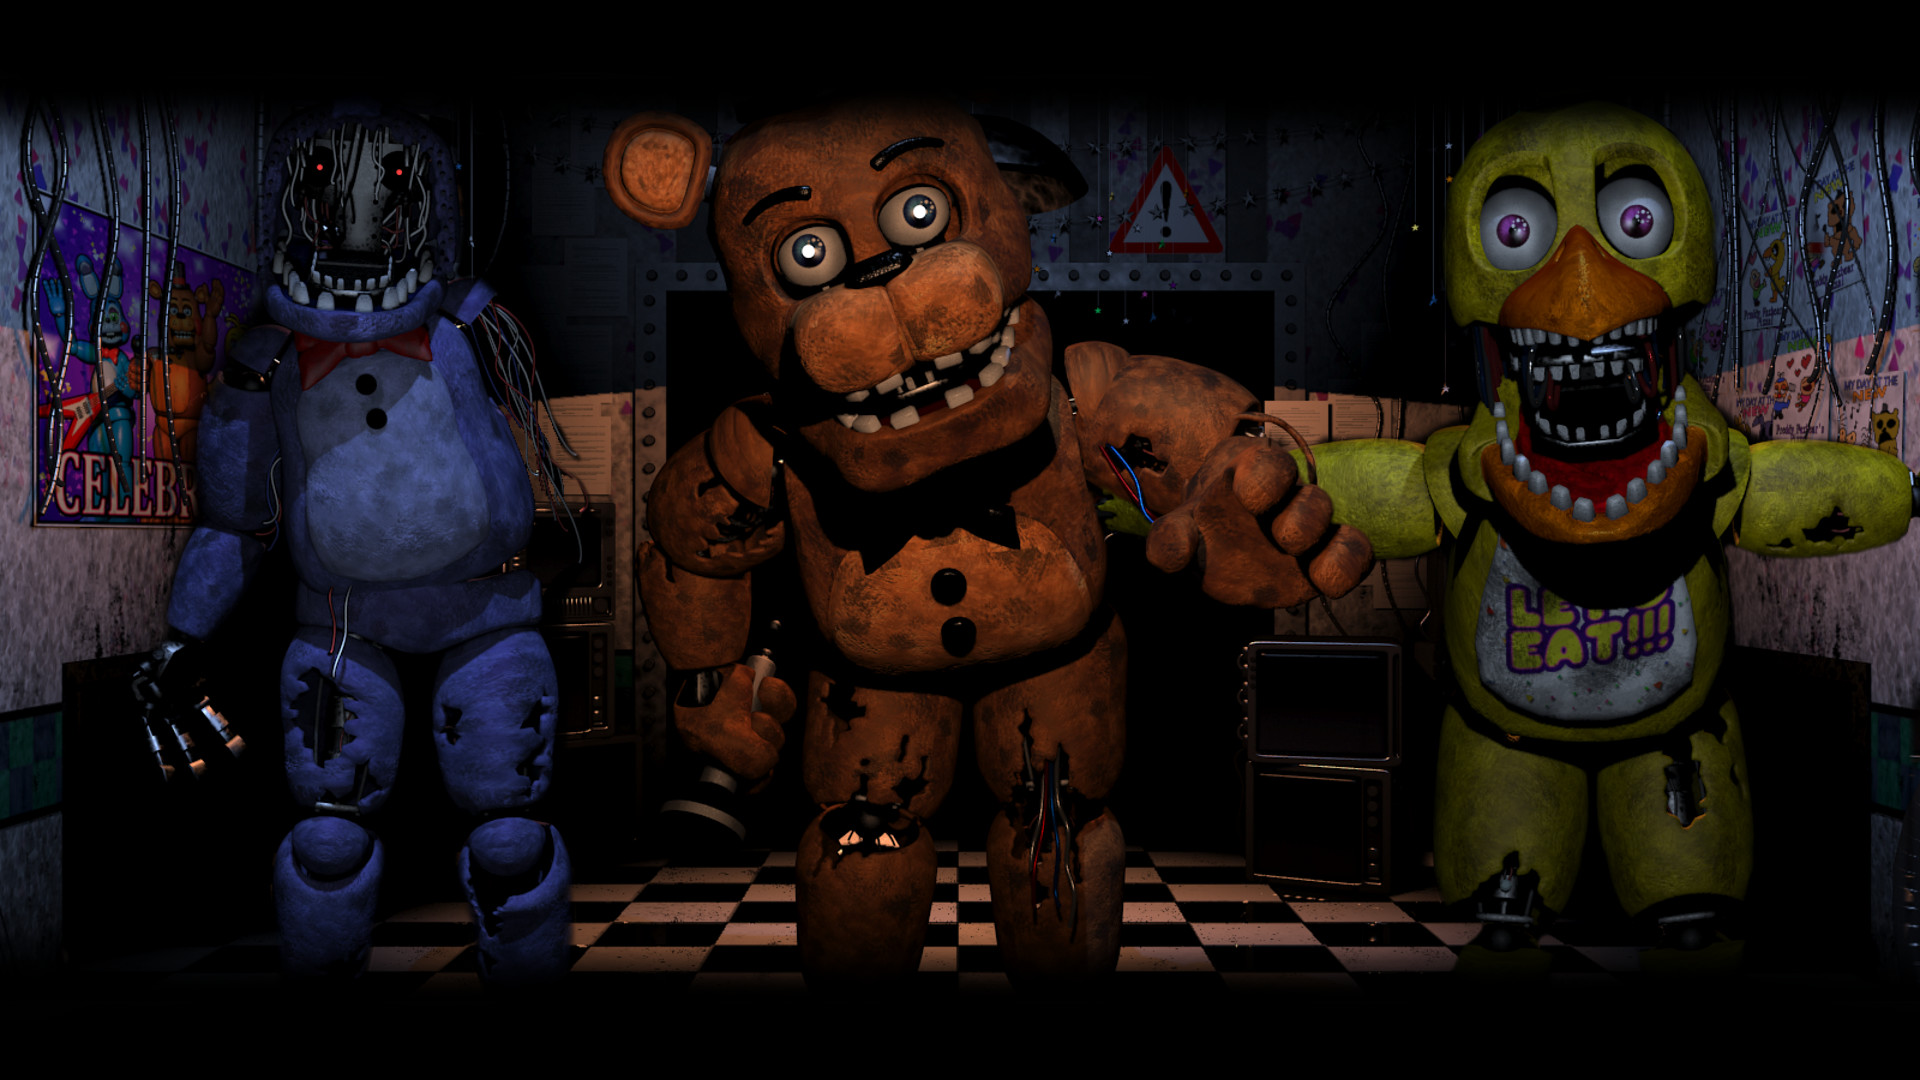 1920x1080 ... Old Gang ( Five Nights At Freddy's 2 Wallpaper) by BloodyHorrible